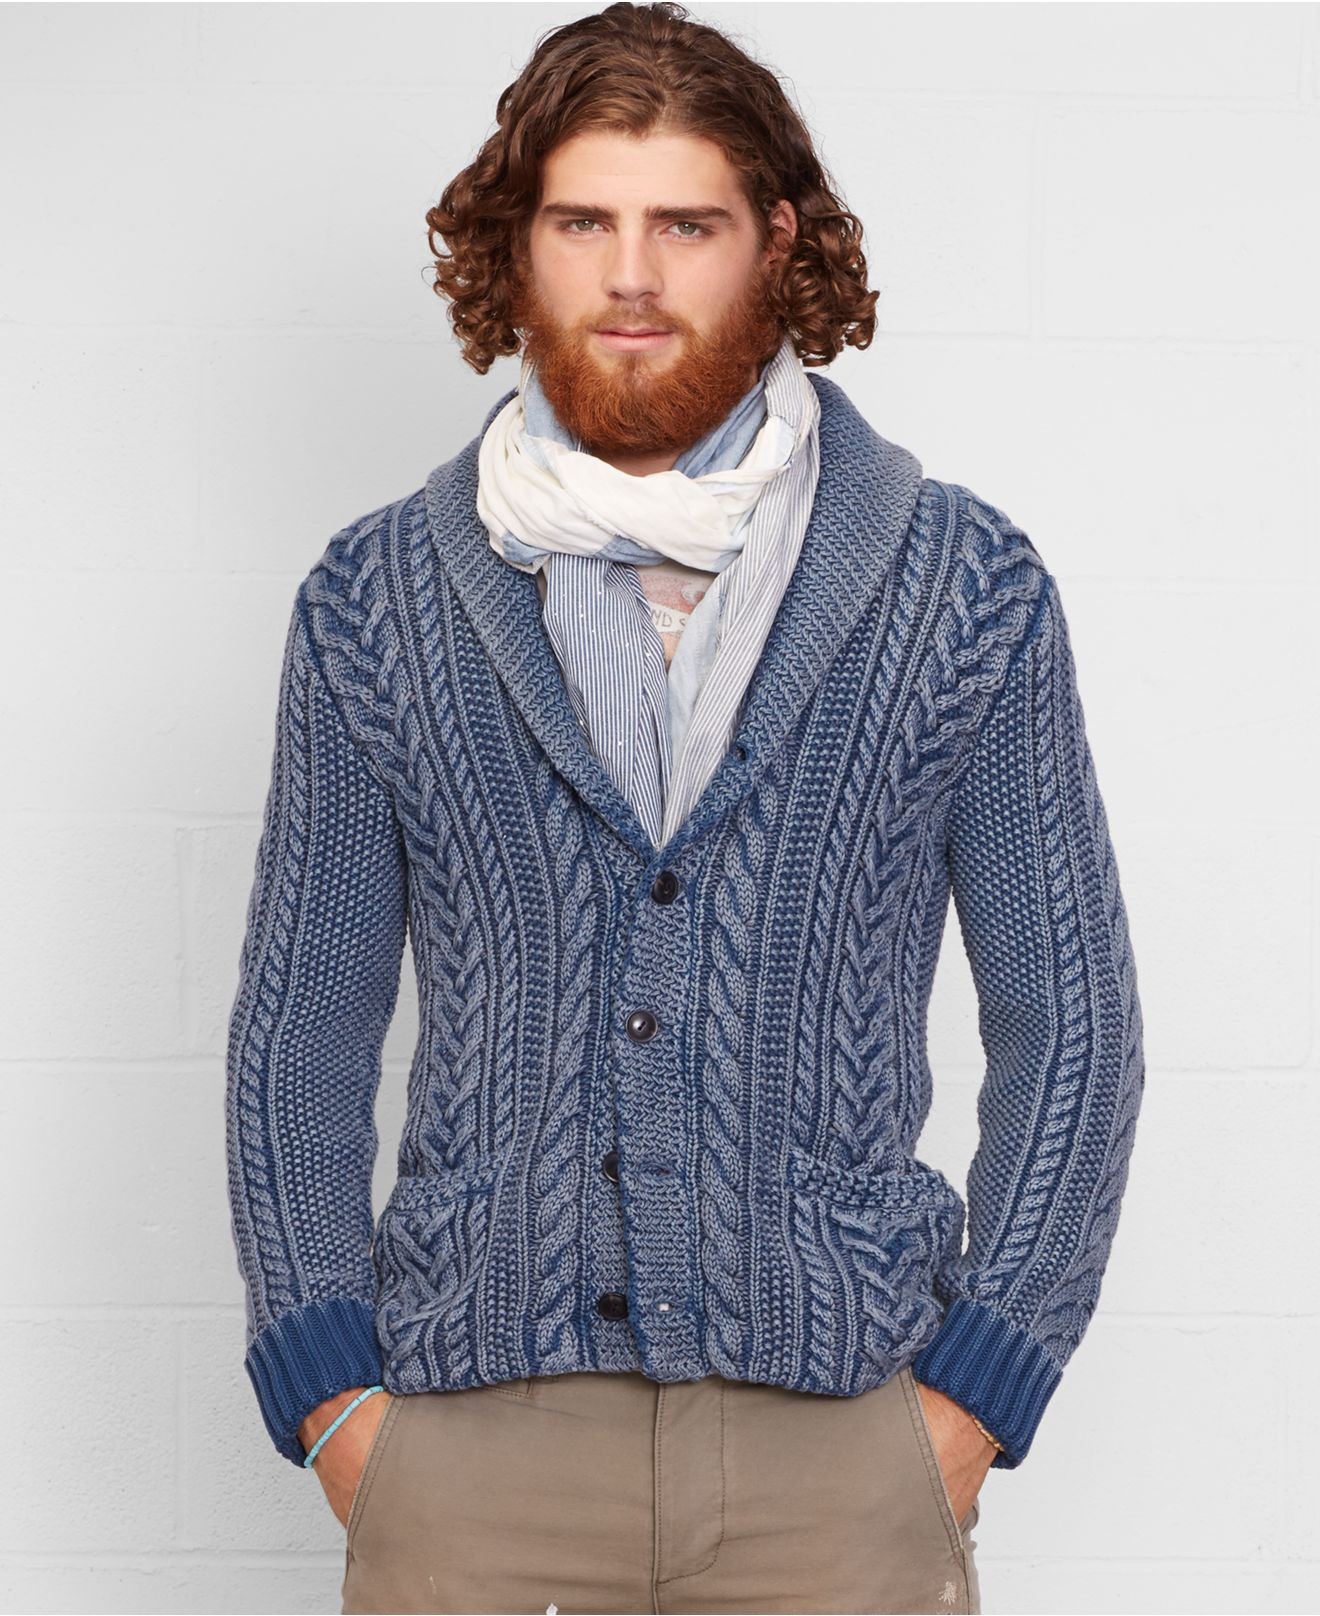 Shop for men's denim sweater online at Men's Wearhouse. Browse the latest denim sweater styles & selection from loadingtag.ga, the leader in men's apparel. FREE Shipping on orders $99+!